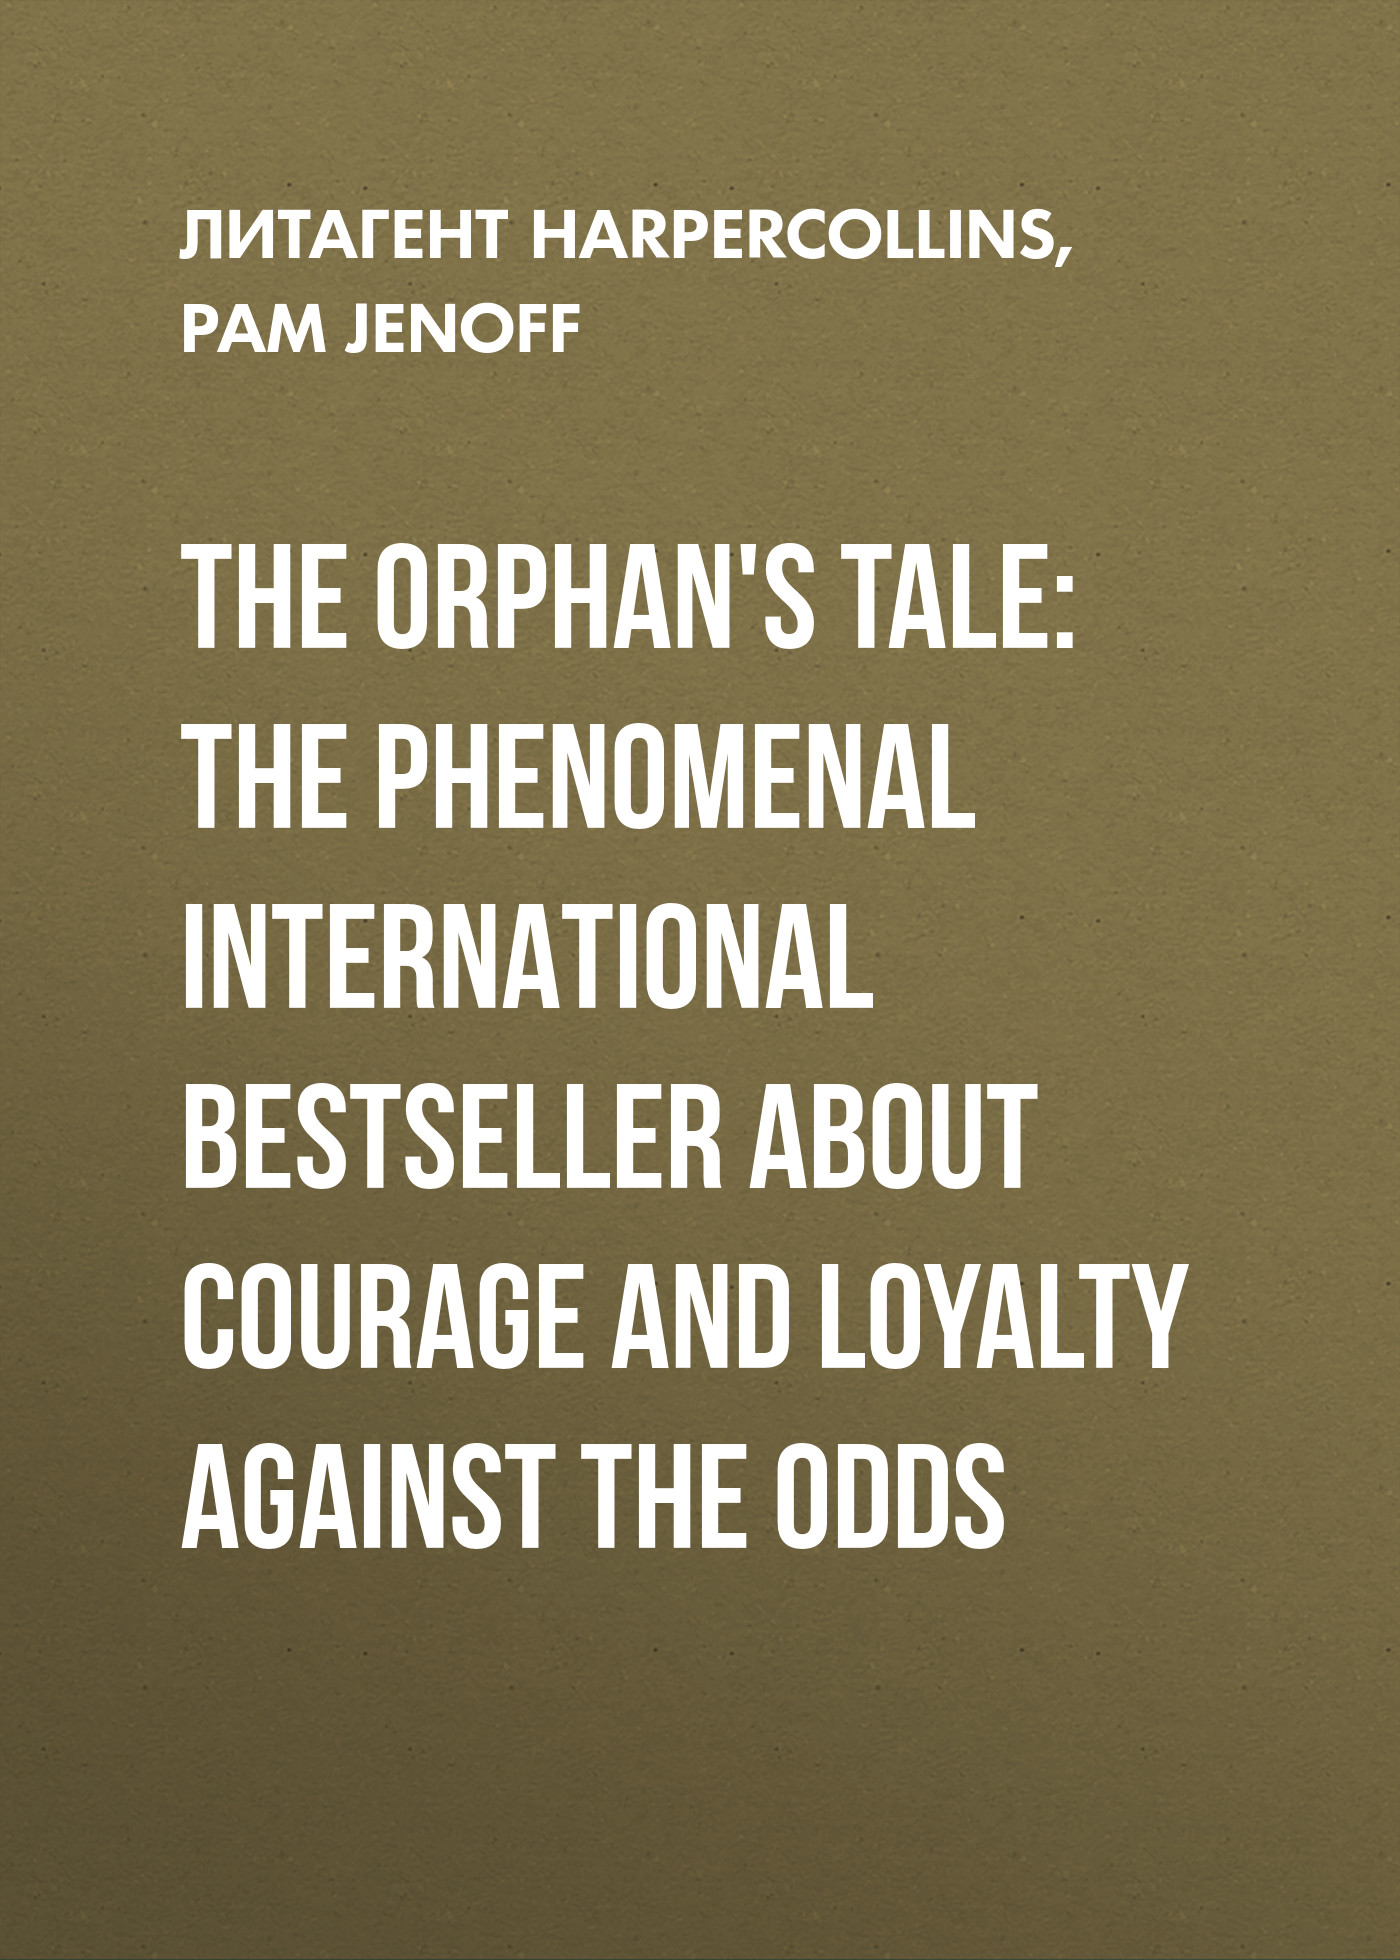 Pam Jenoff The Orphan's Tale: The phenomenal international bestseller about courage and loyalty against the odds steel d against all odds